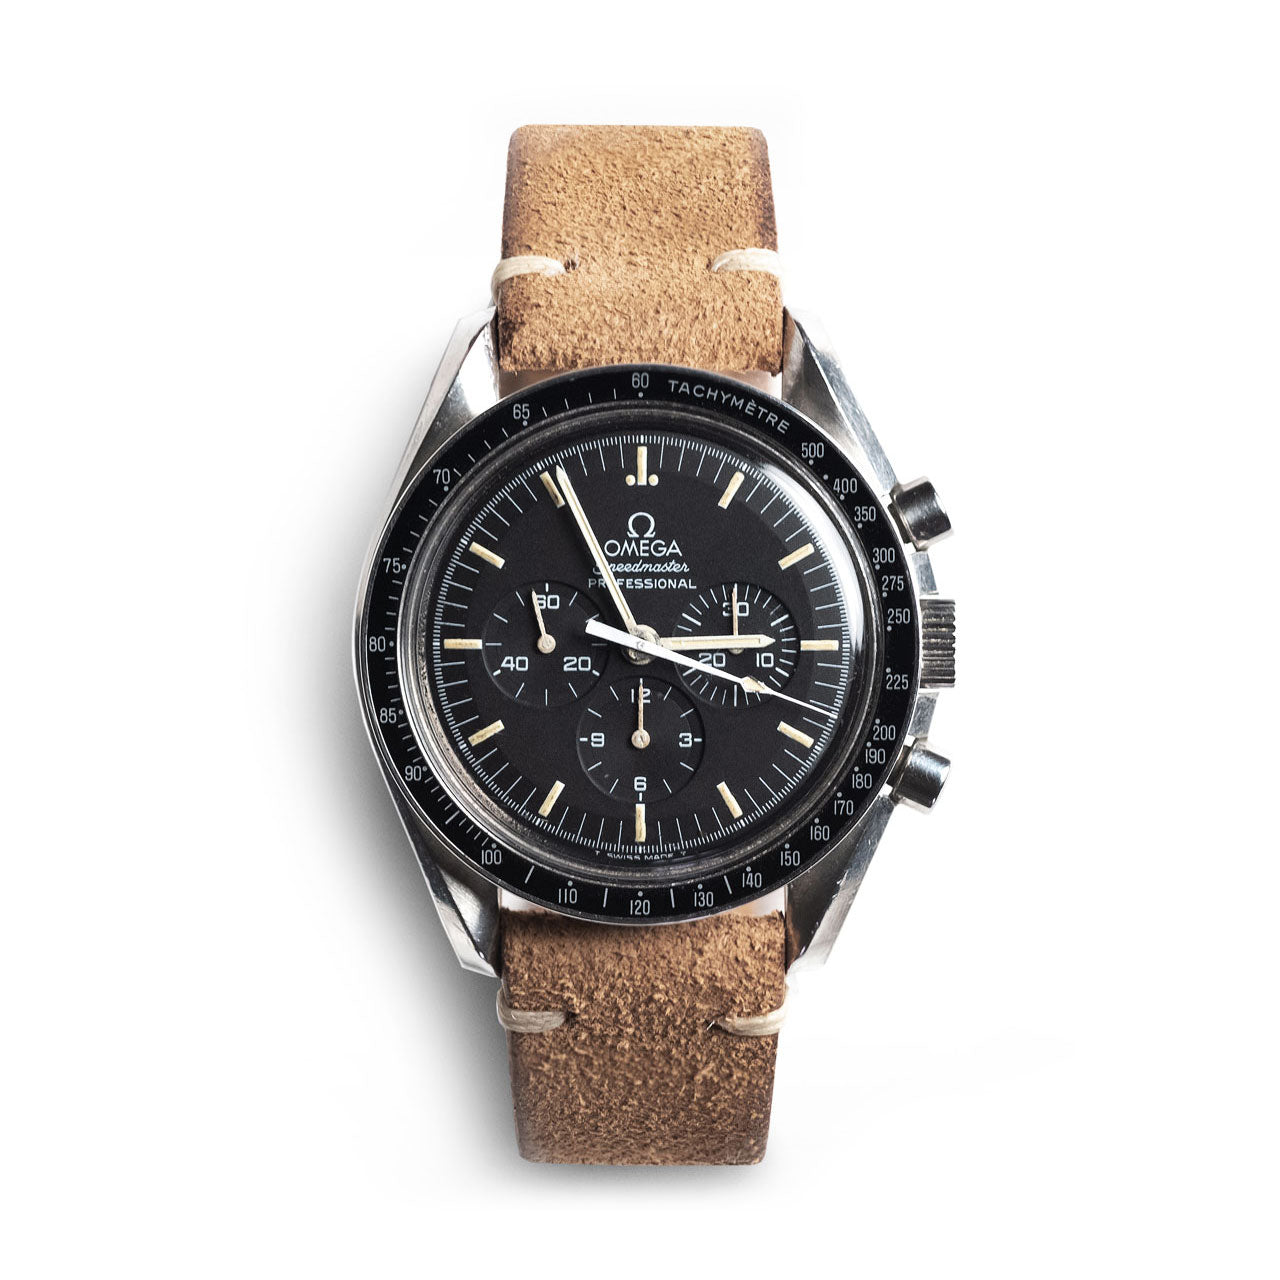 1969 Omega Speedmaster Reference 145.022 Watch